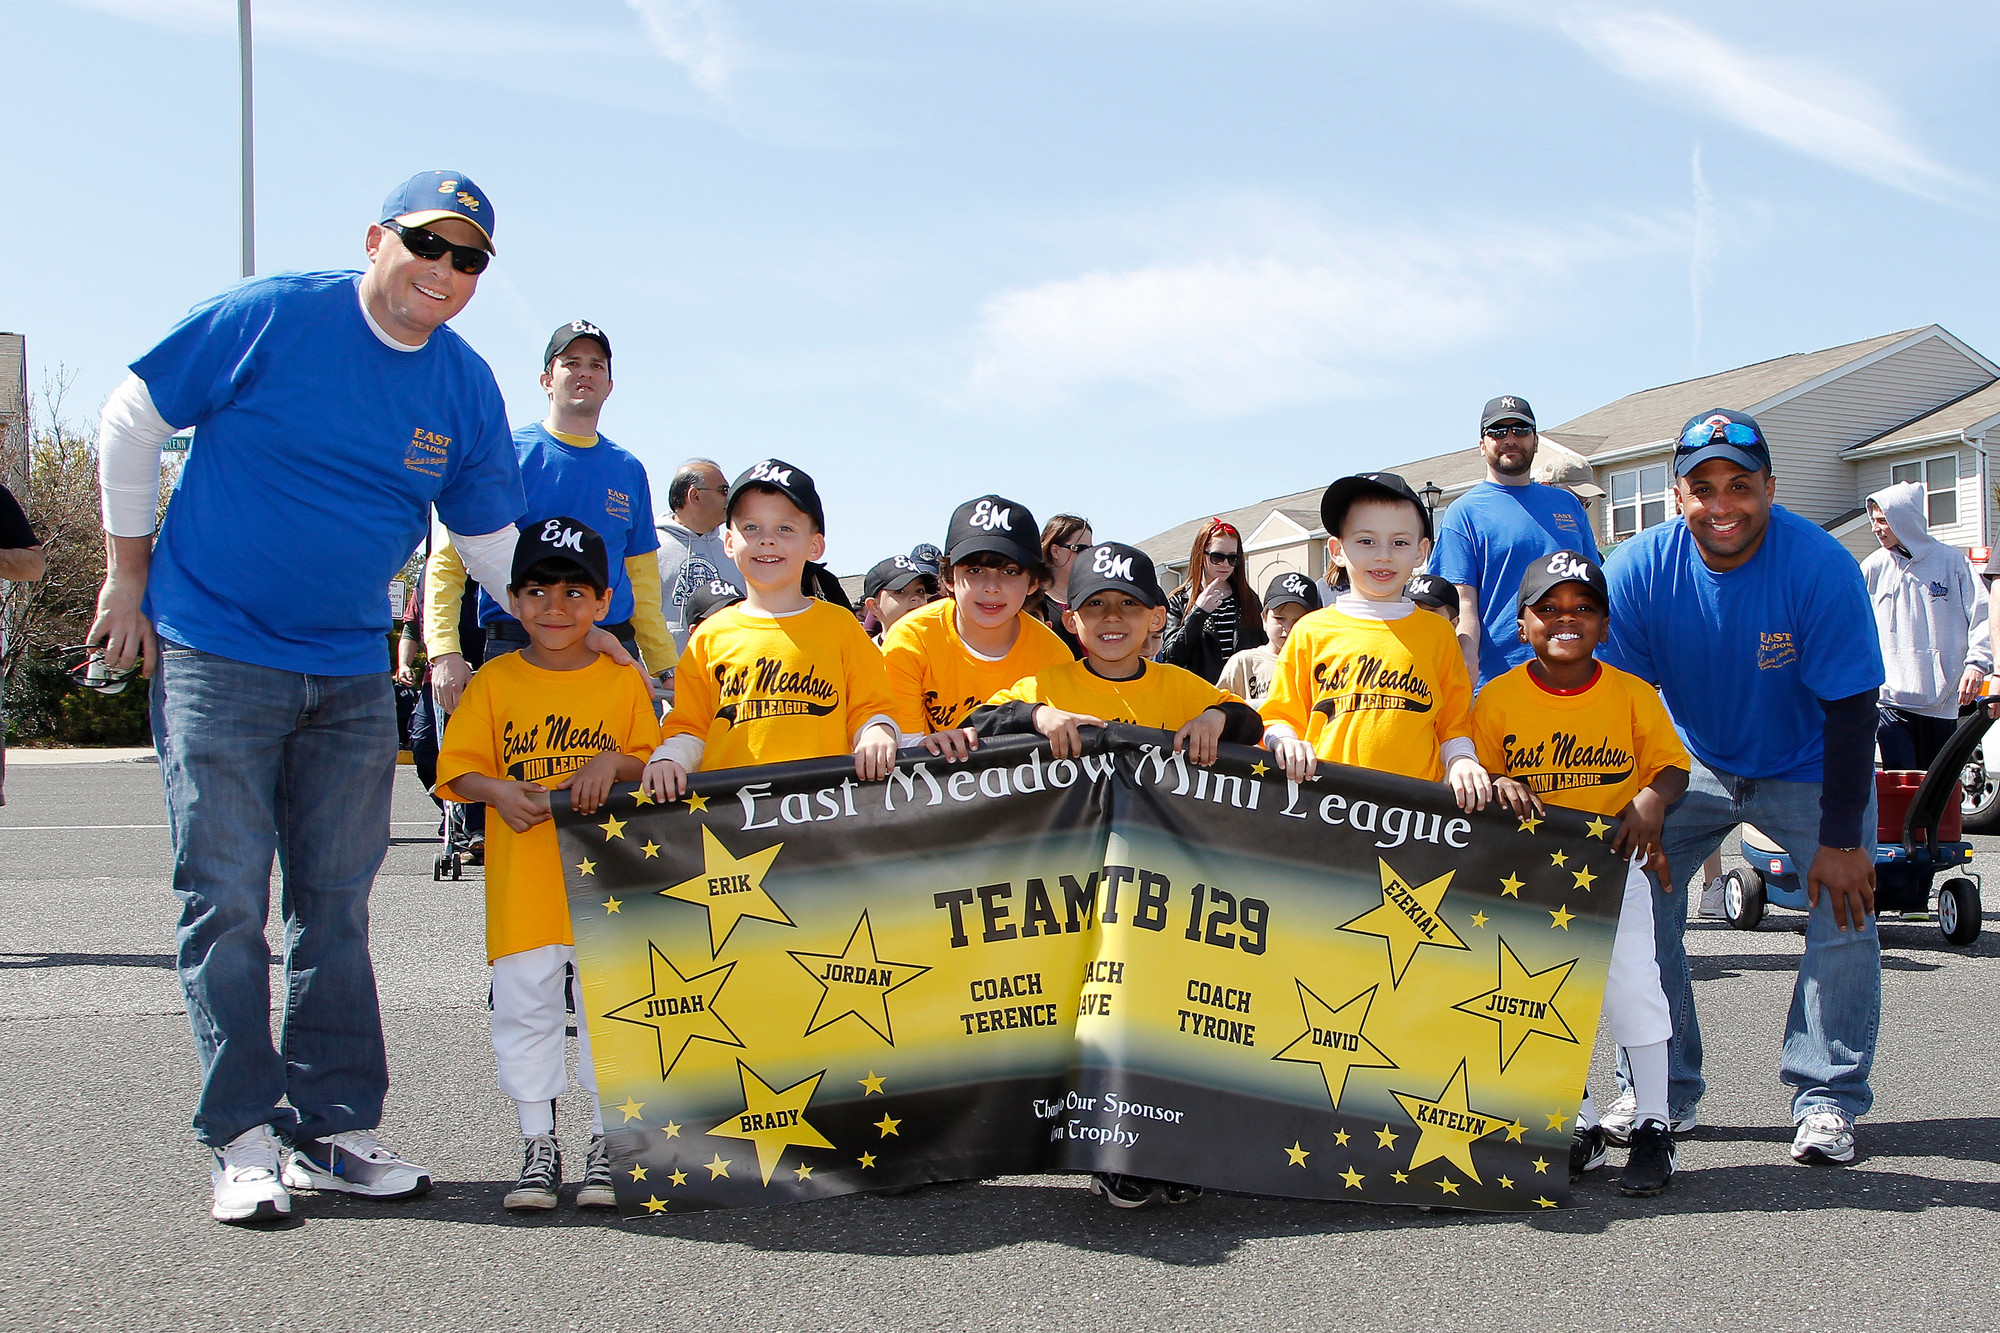 The East Meadow Tee Ball Team No. 129 marched the parade with their coaches.